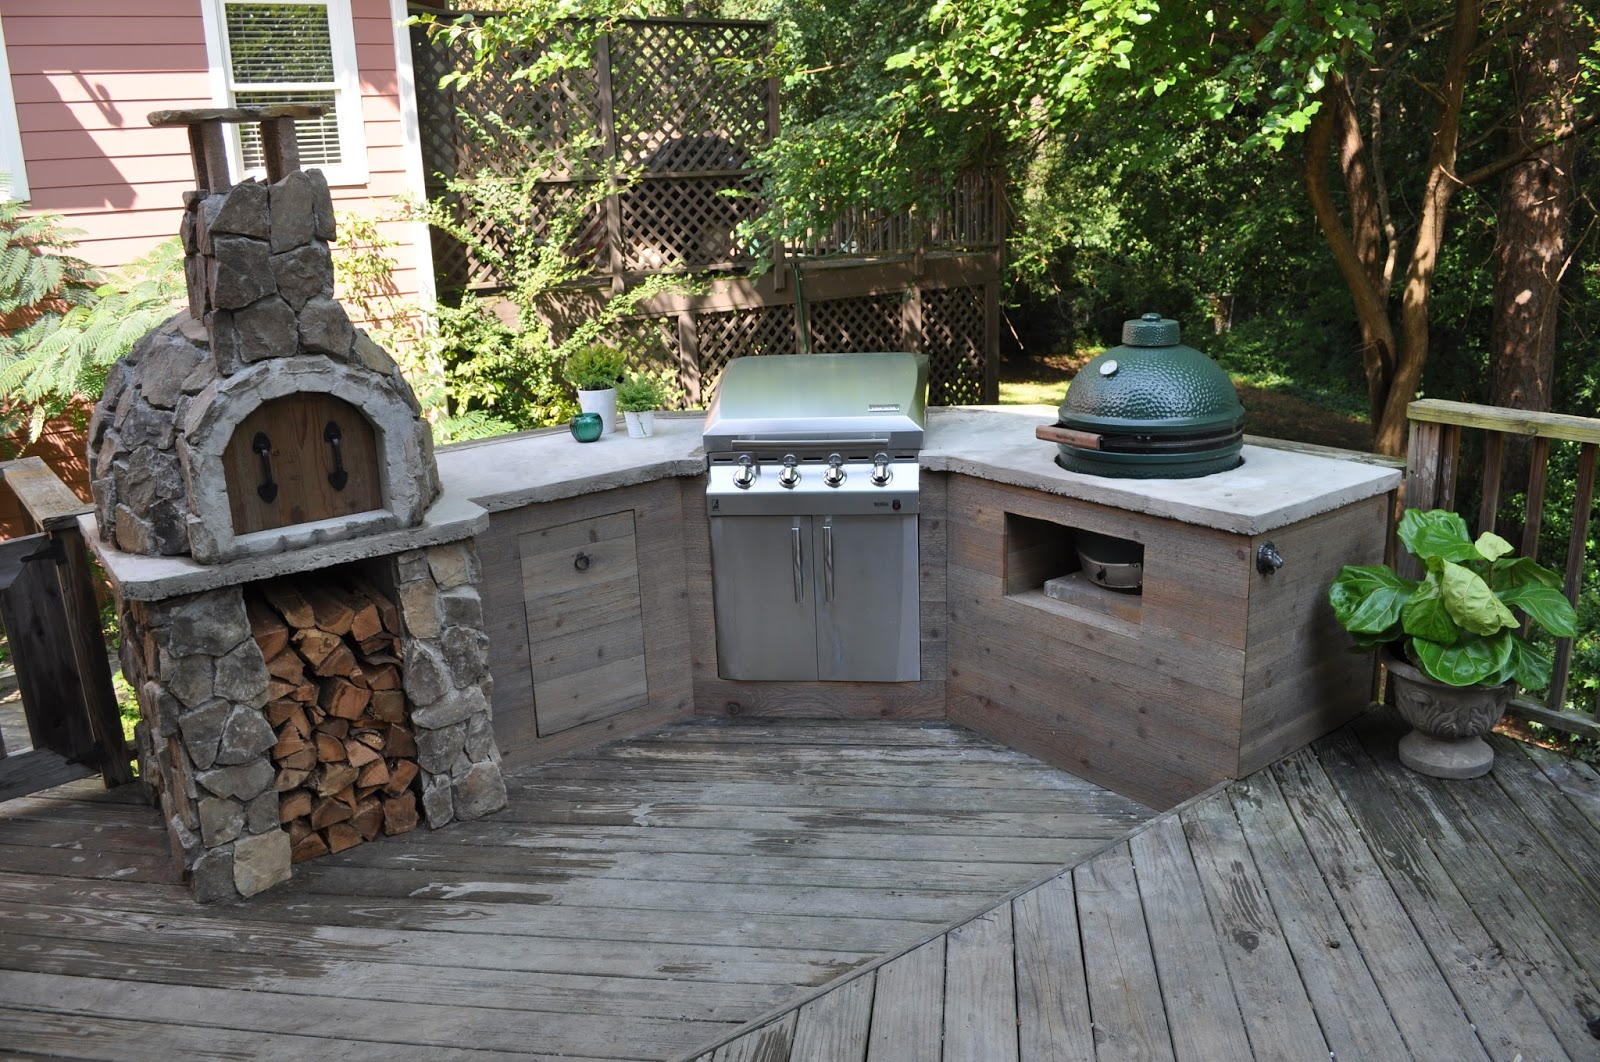 The Cow Spot: Outdoor Kitchen Finale Outdoor Kitchens With Pizza Oven Ideas on enclosed outdoor kitchen pizza oven, outdoor pizza ovens patio, outdoor kitchen pizza oven fireplace, deck ideas with pizza oven, back yard kitchen pizza oven, brick oven, outdoor rooms with pizza ovens, outdoor kitchen on deck, outdoor kitchen pizza oven plans, outdoor ovens kitchen designs,